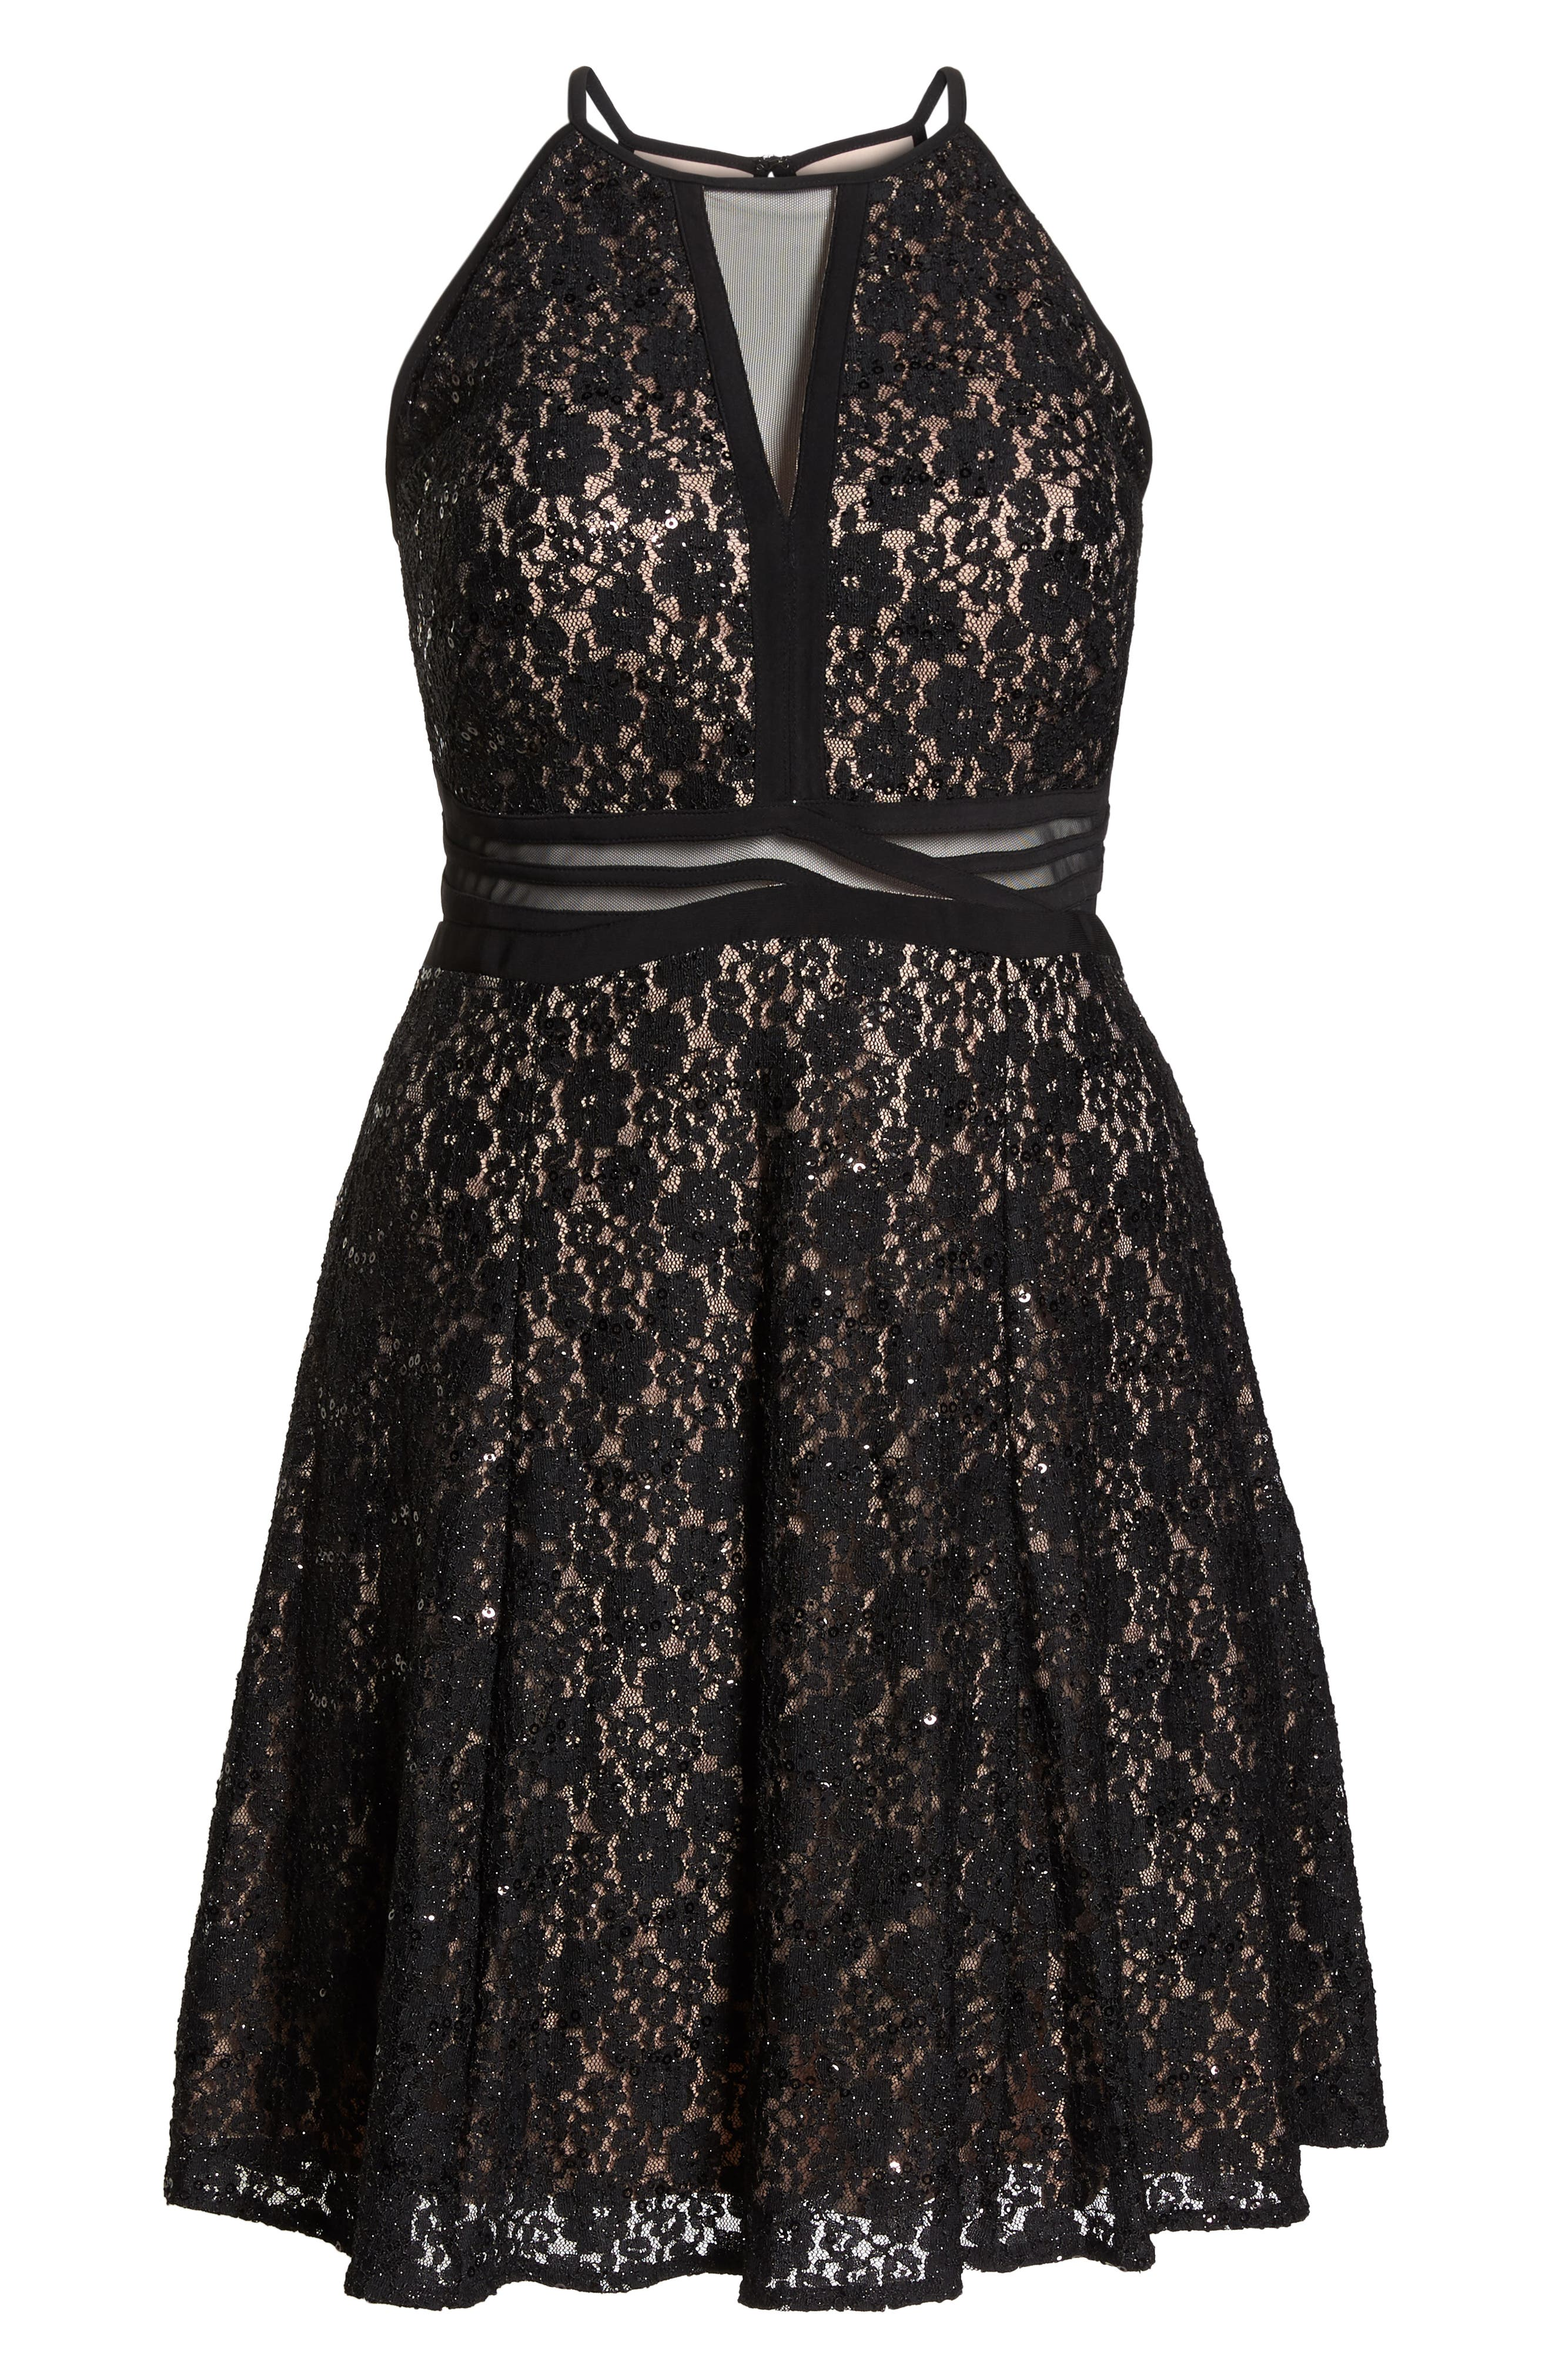 MORGAN & CO., Sheer Inset Lace Fit & Flare Dress, Alternate thumbnail 8, color, BLACK/ NUDE